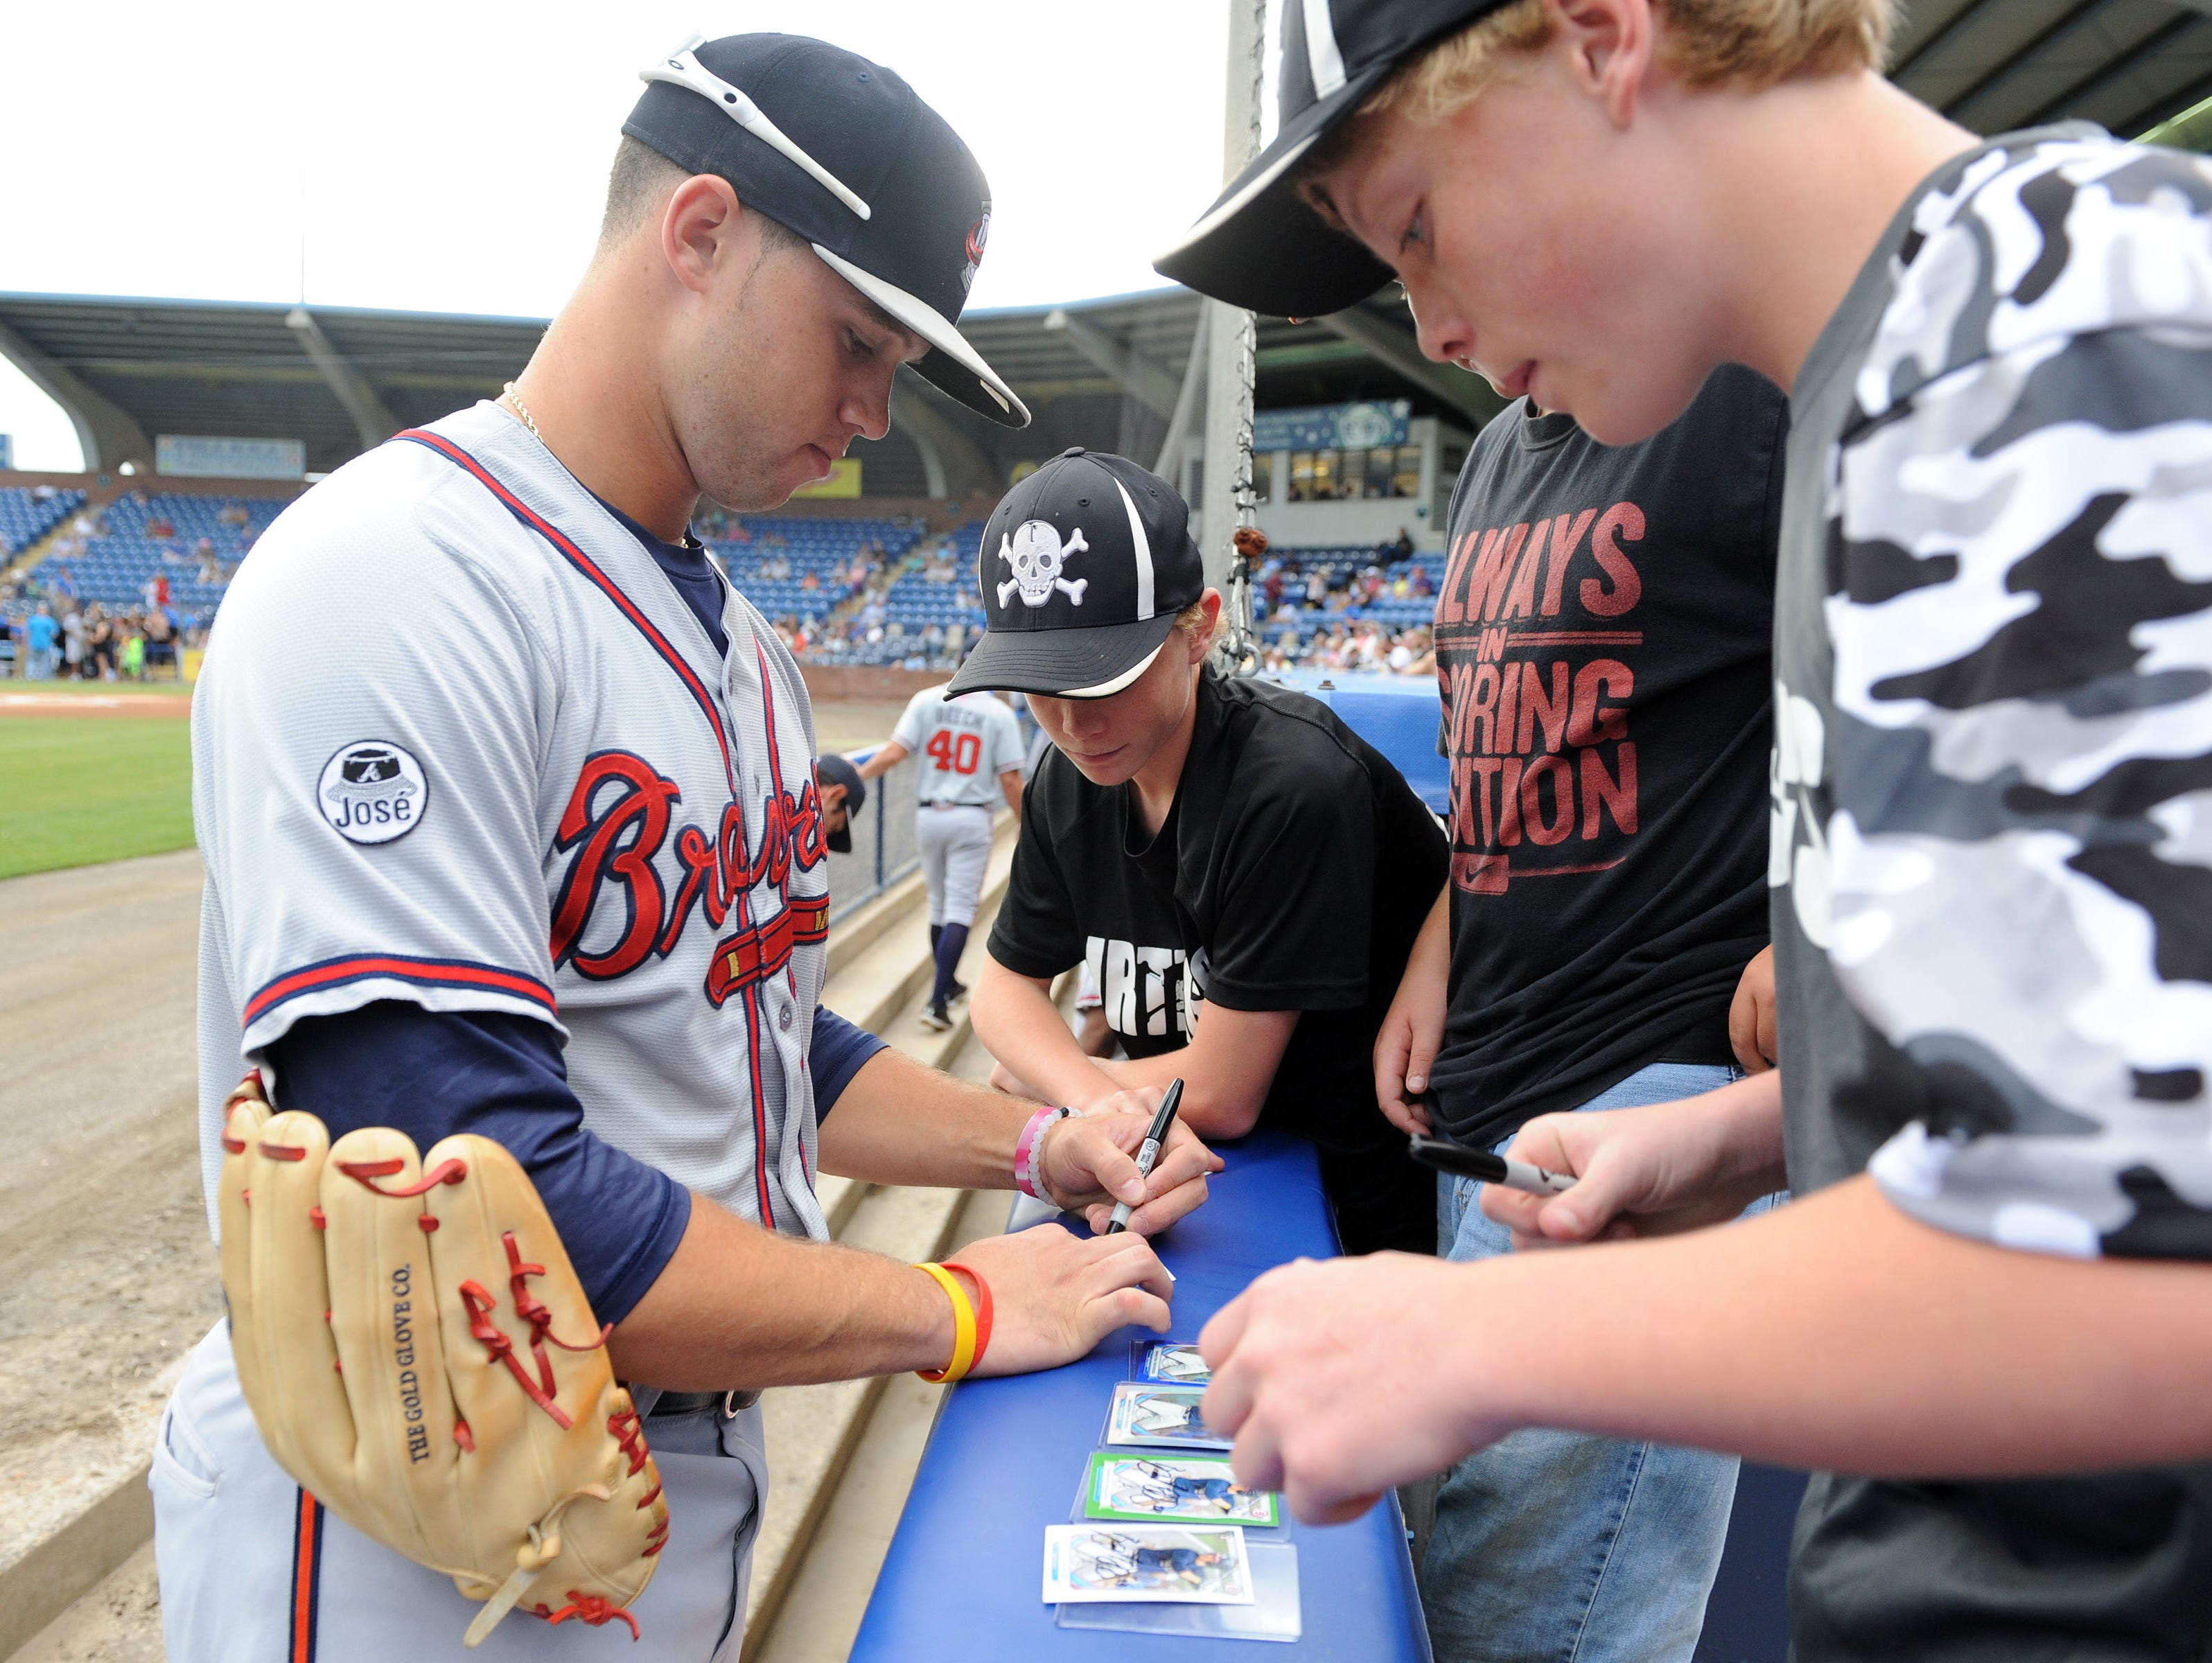 Braxton Davidson signs autographs before a game at Asheville's McCormick Field in 2015.